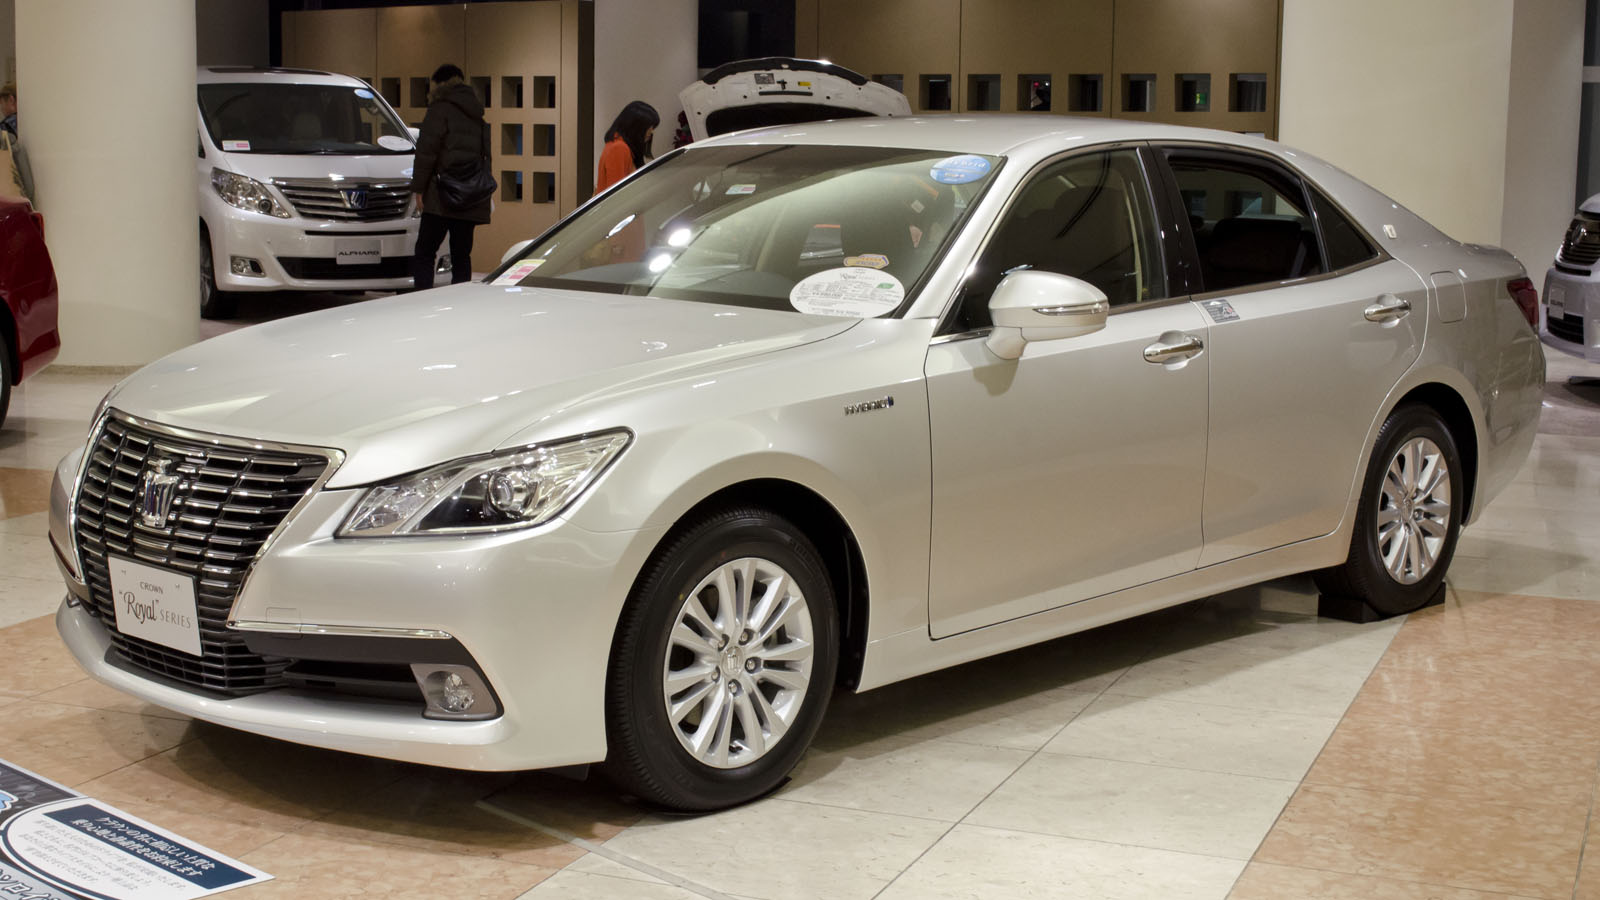 Toyota Crown #1